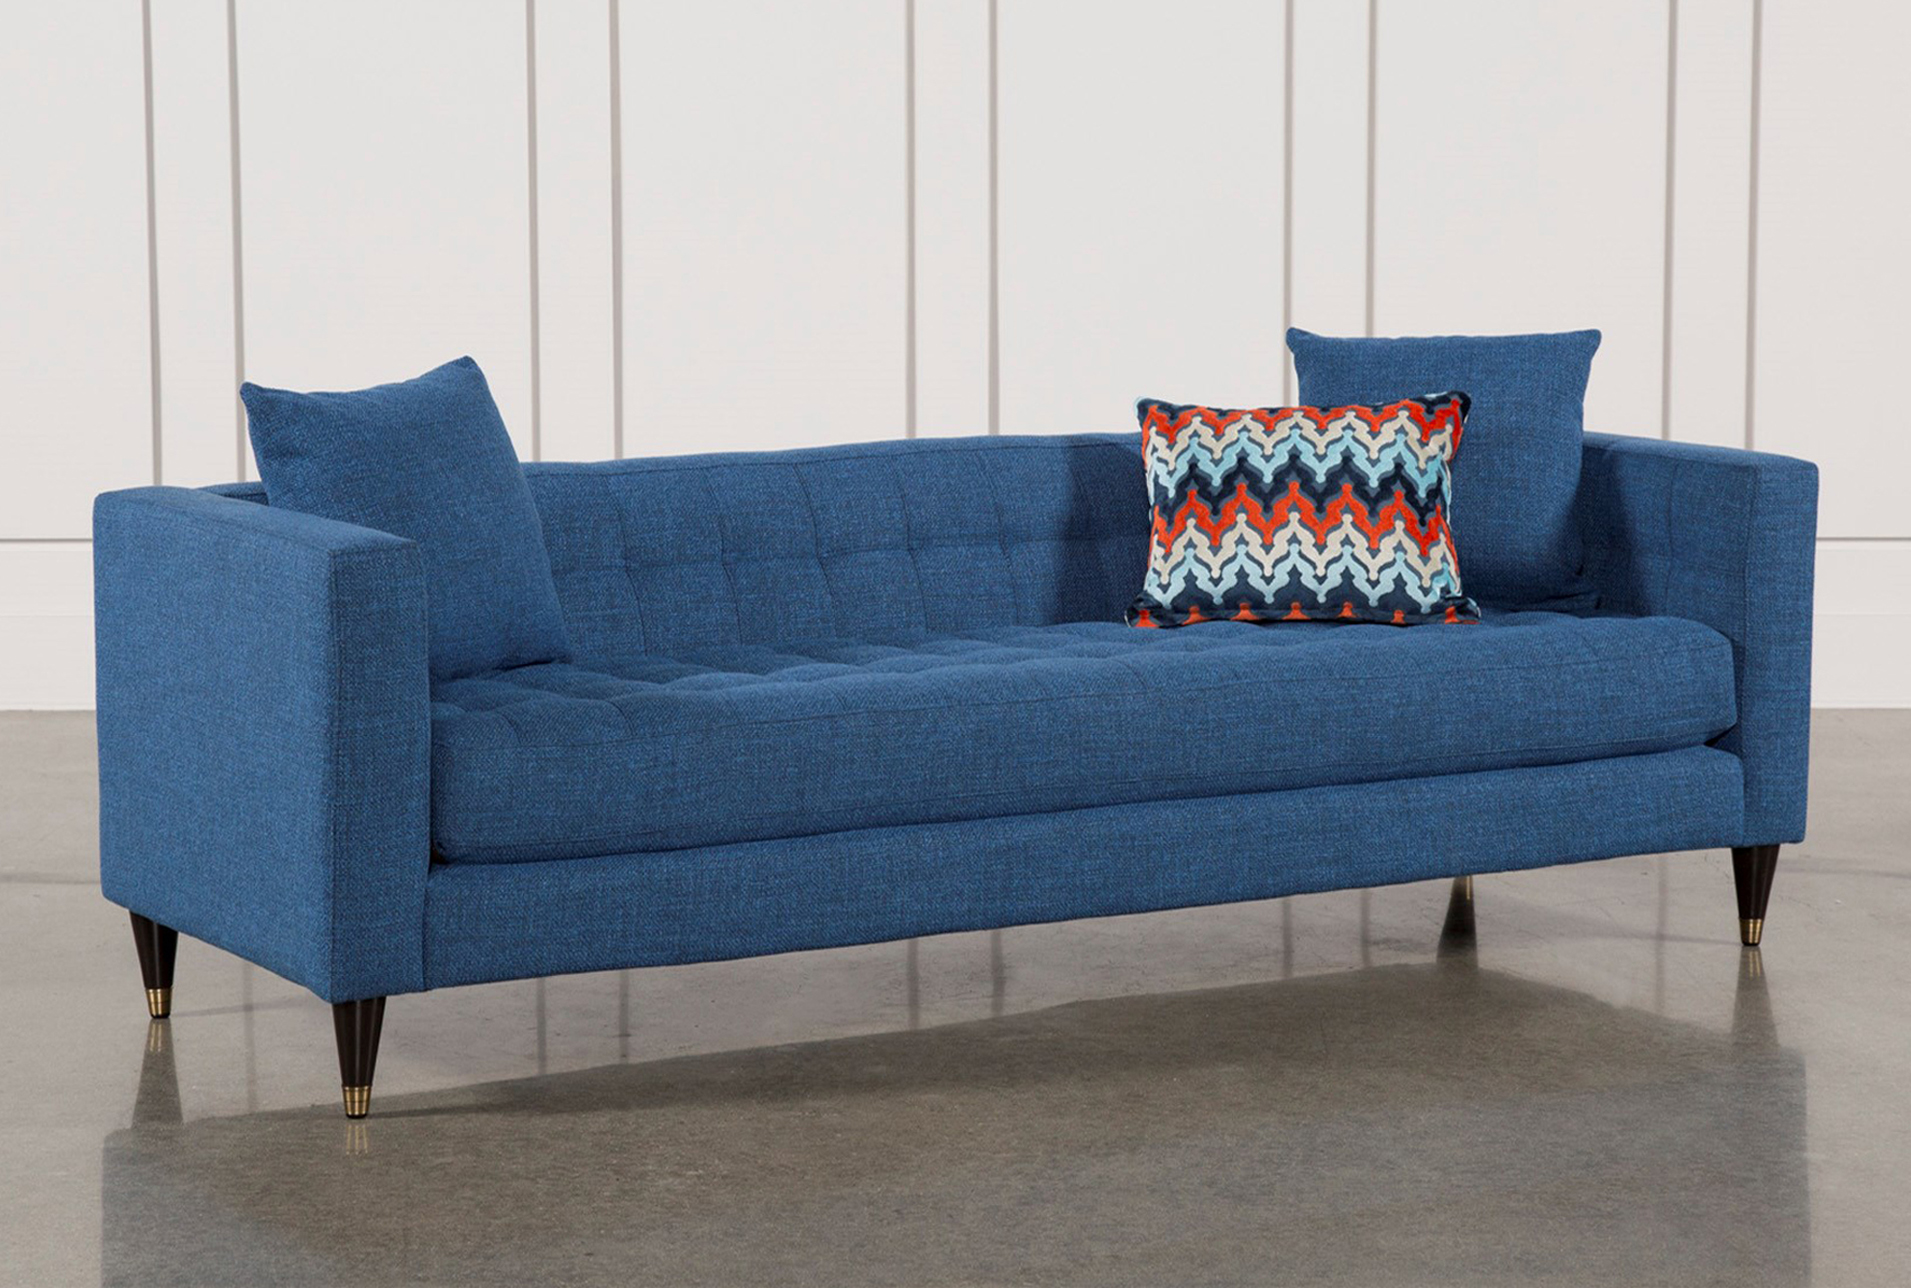 Superbe Tate Estate Sofa (Qty: 1) Has Been Successfully Added To Your Cart.